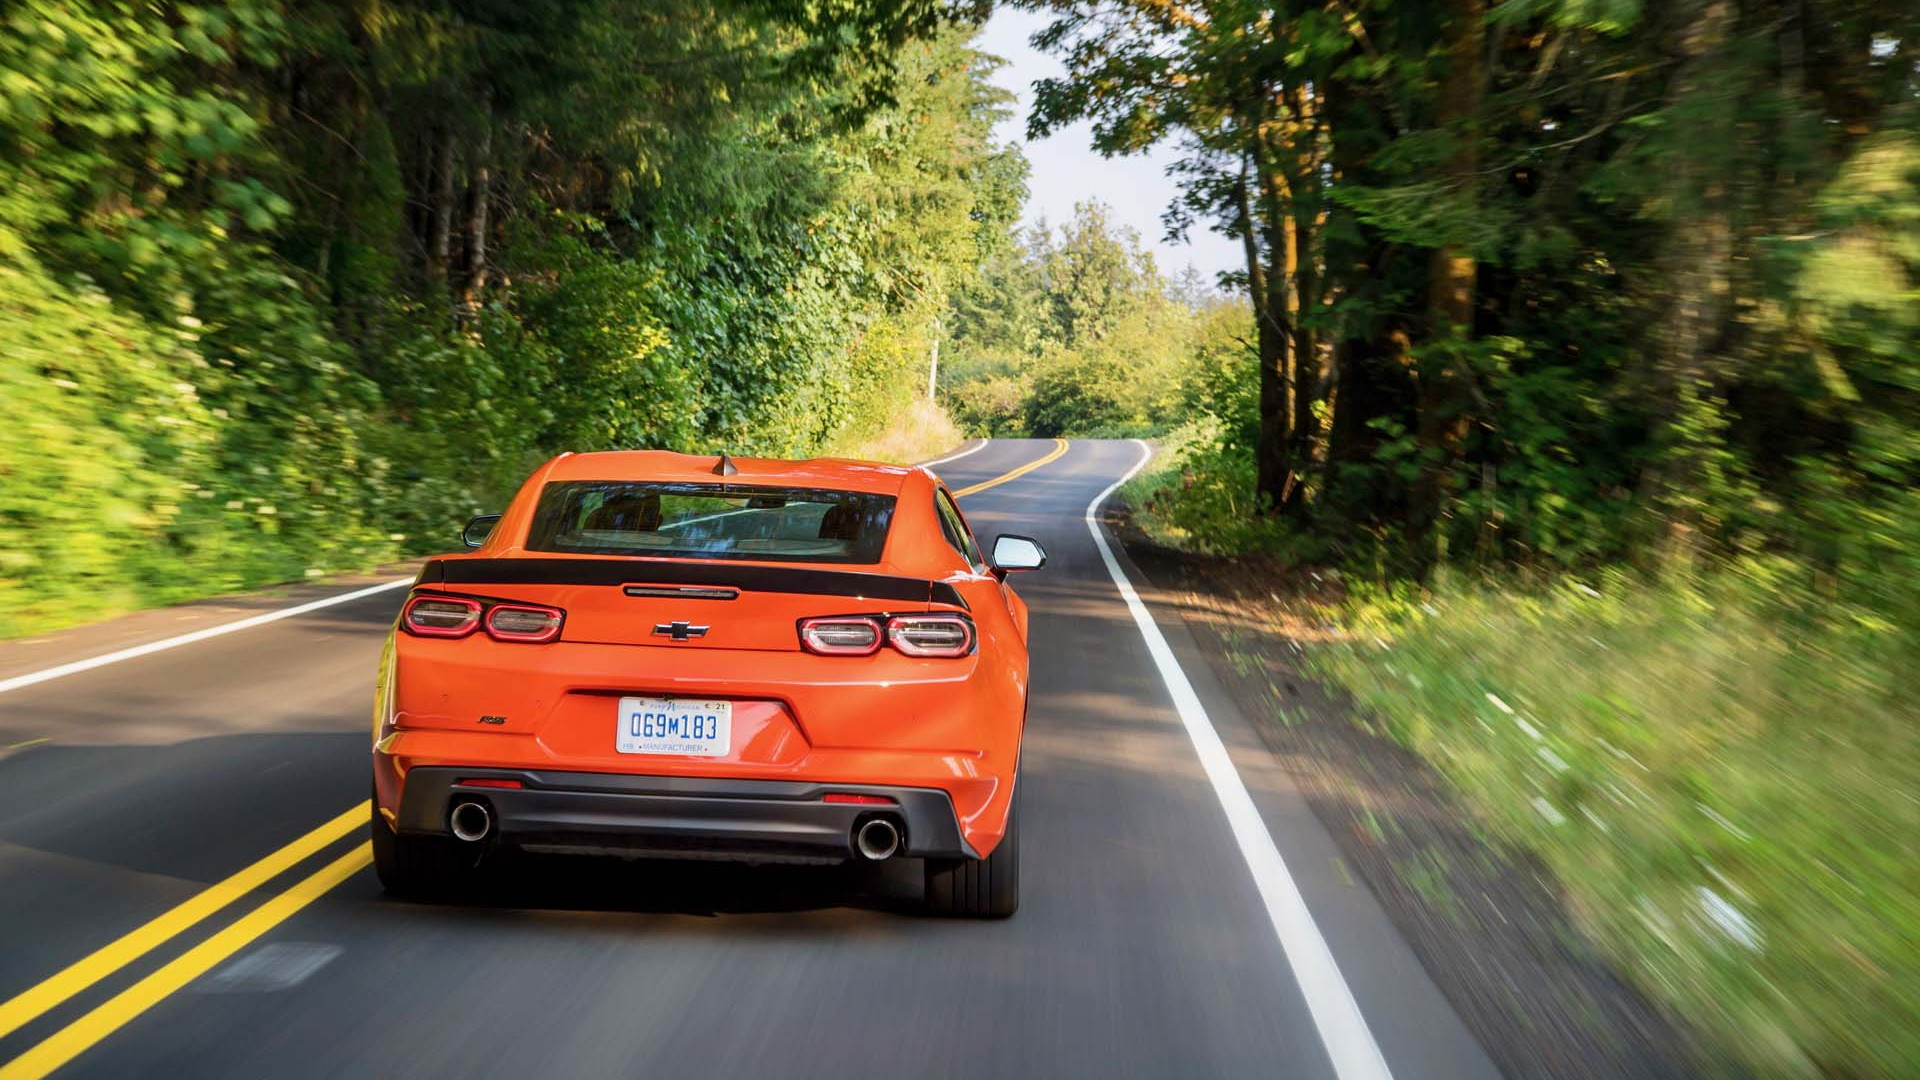 2019 Chevrolet Camaro Turbo 1LE first drive